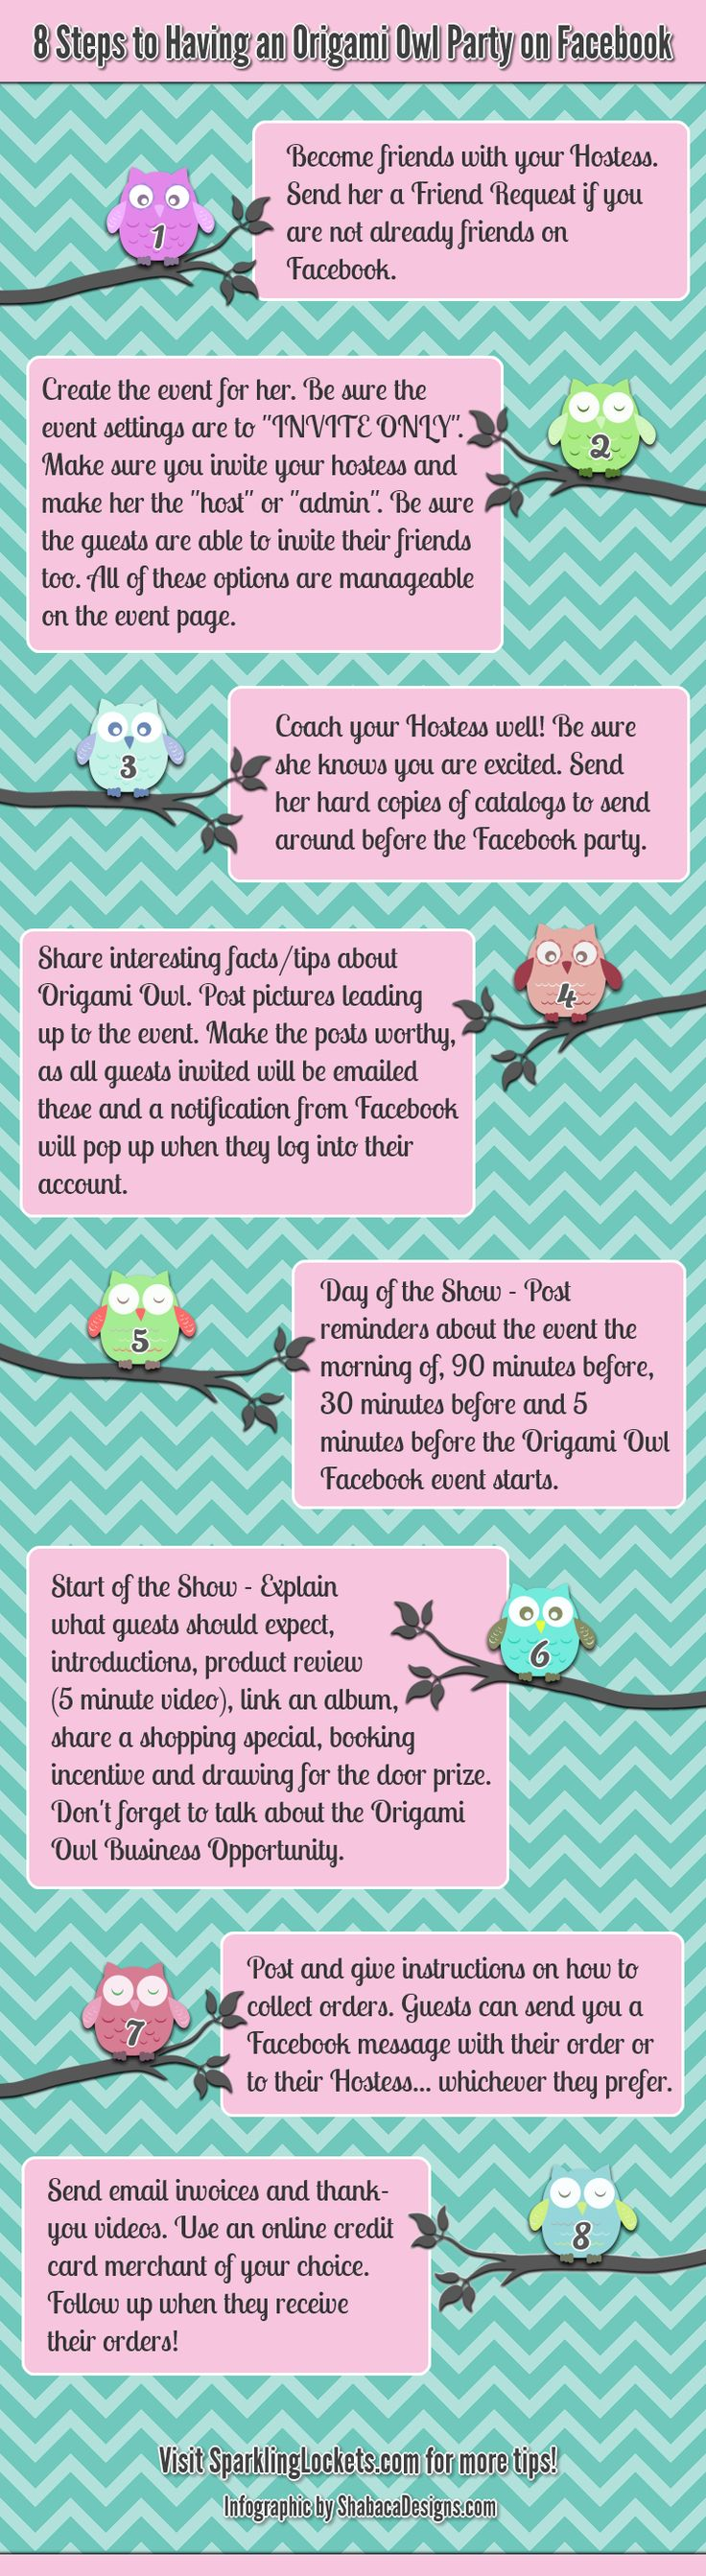 www.jill.miche.com Direct Sales Infographic facebook party outline idea